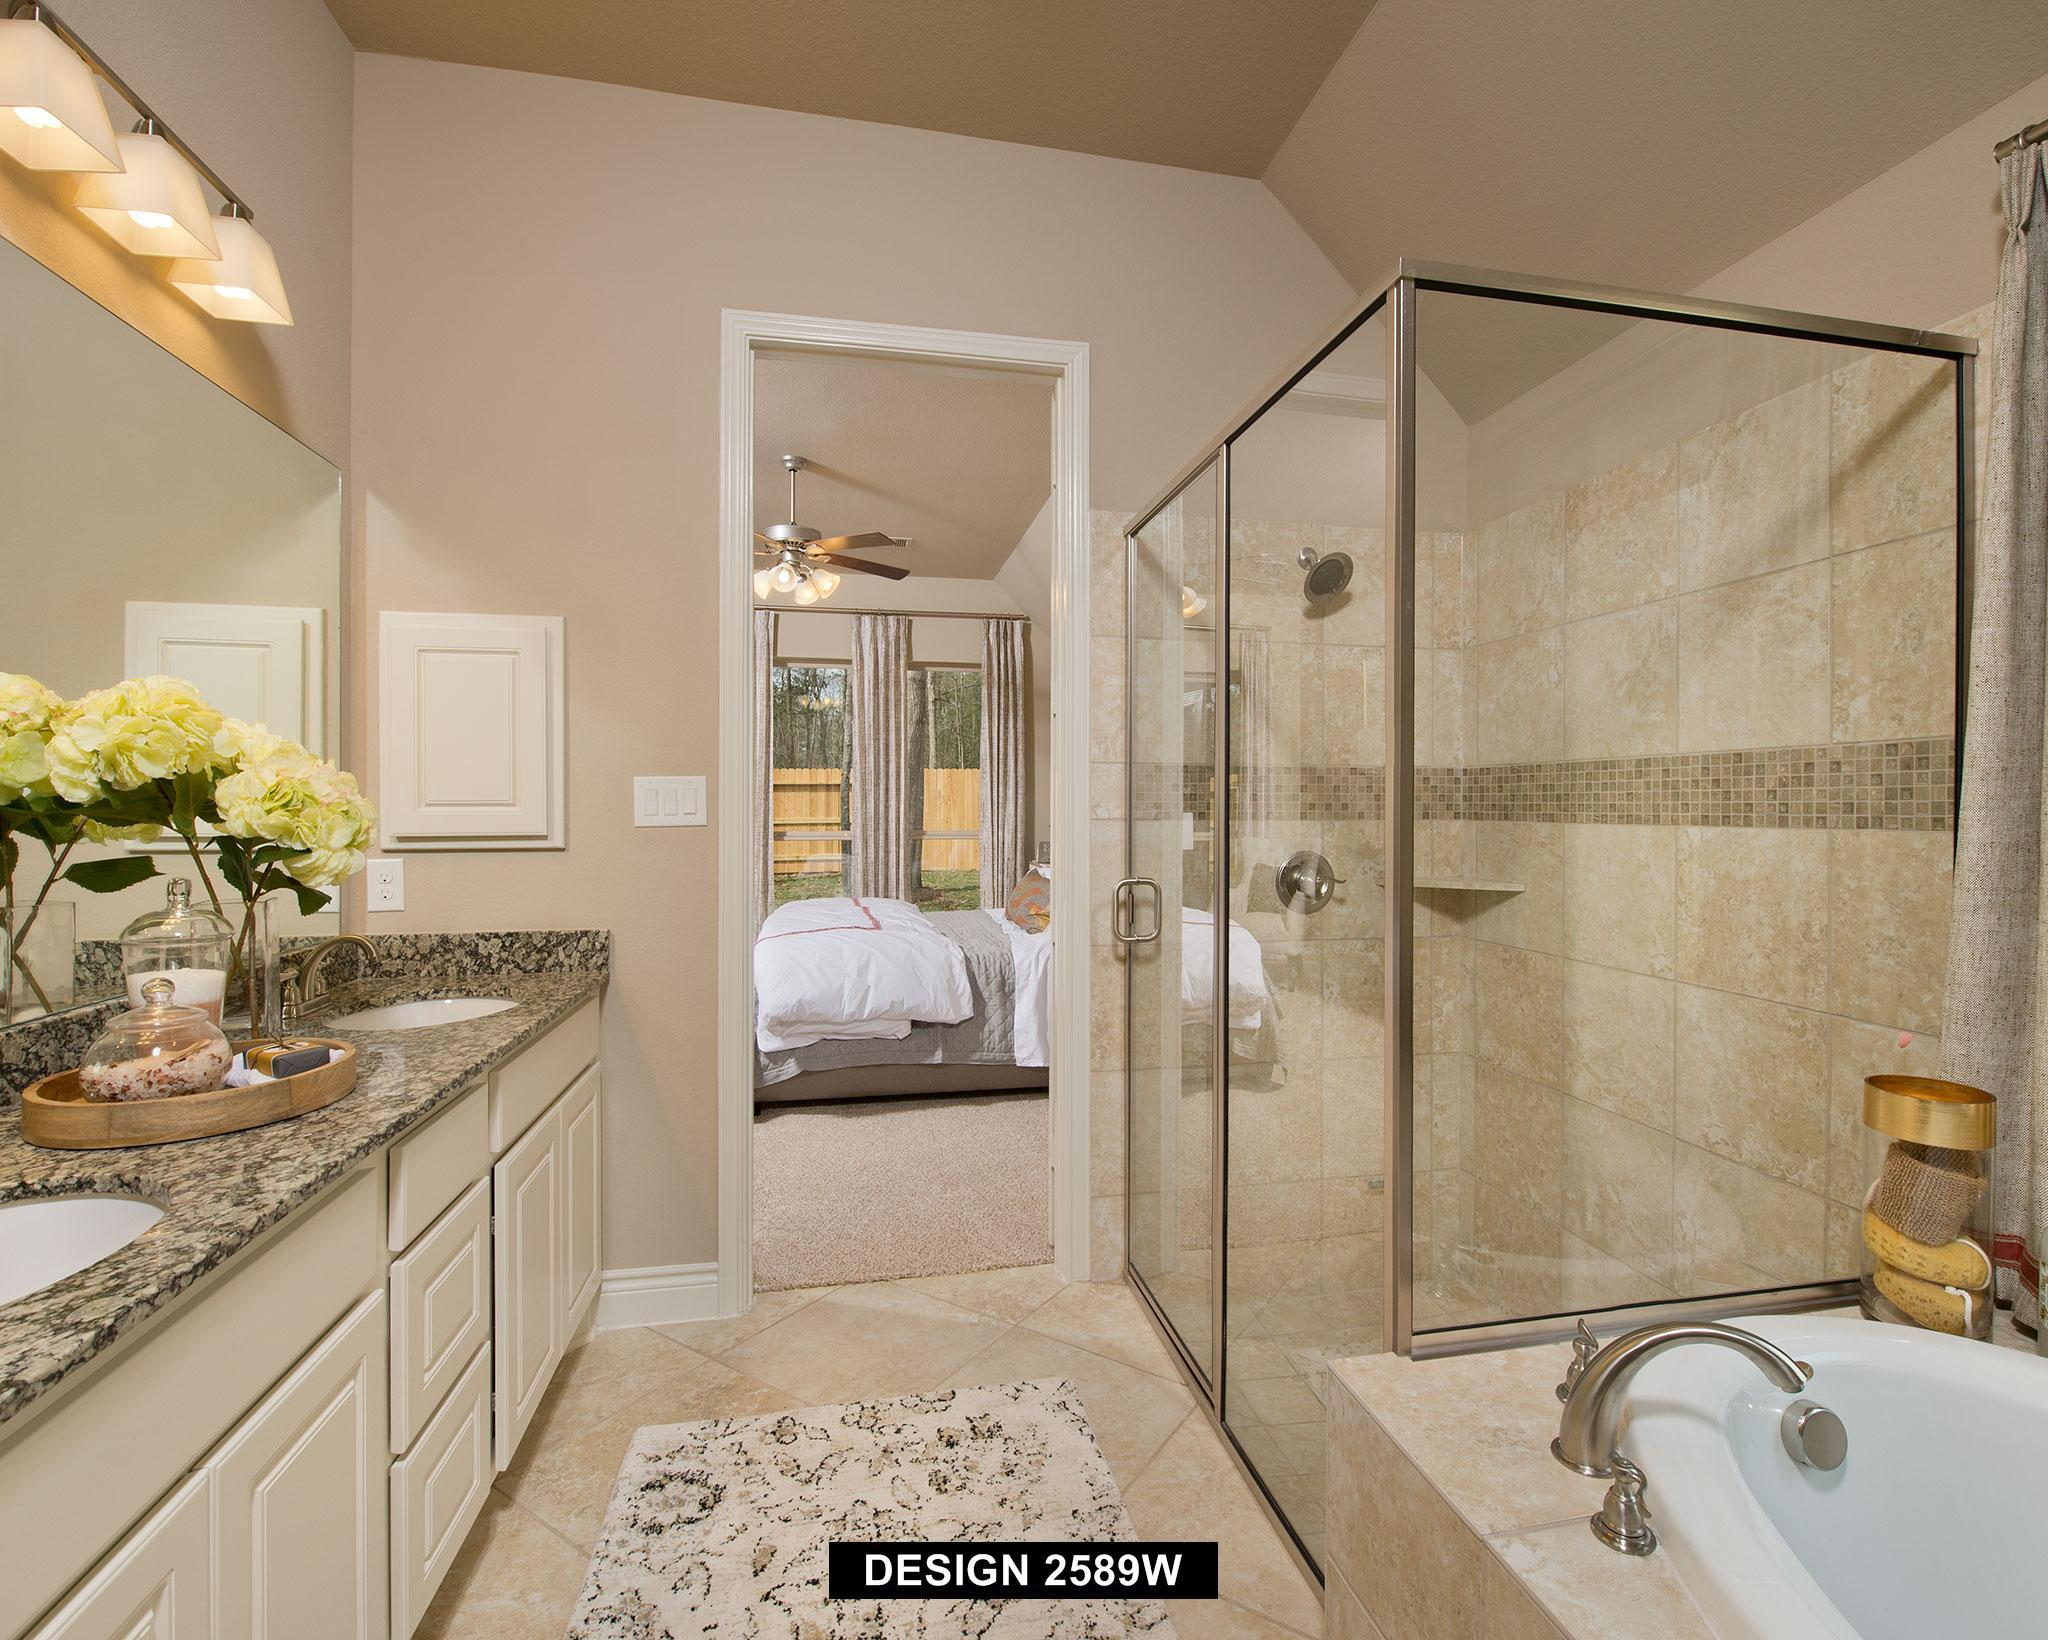 Bathroom featured in the 2589W By Perry Homes in Houston, TX